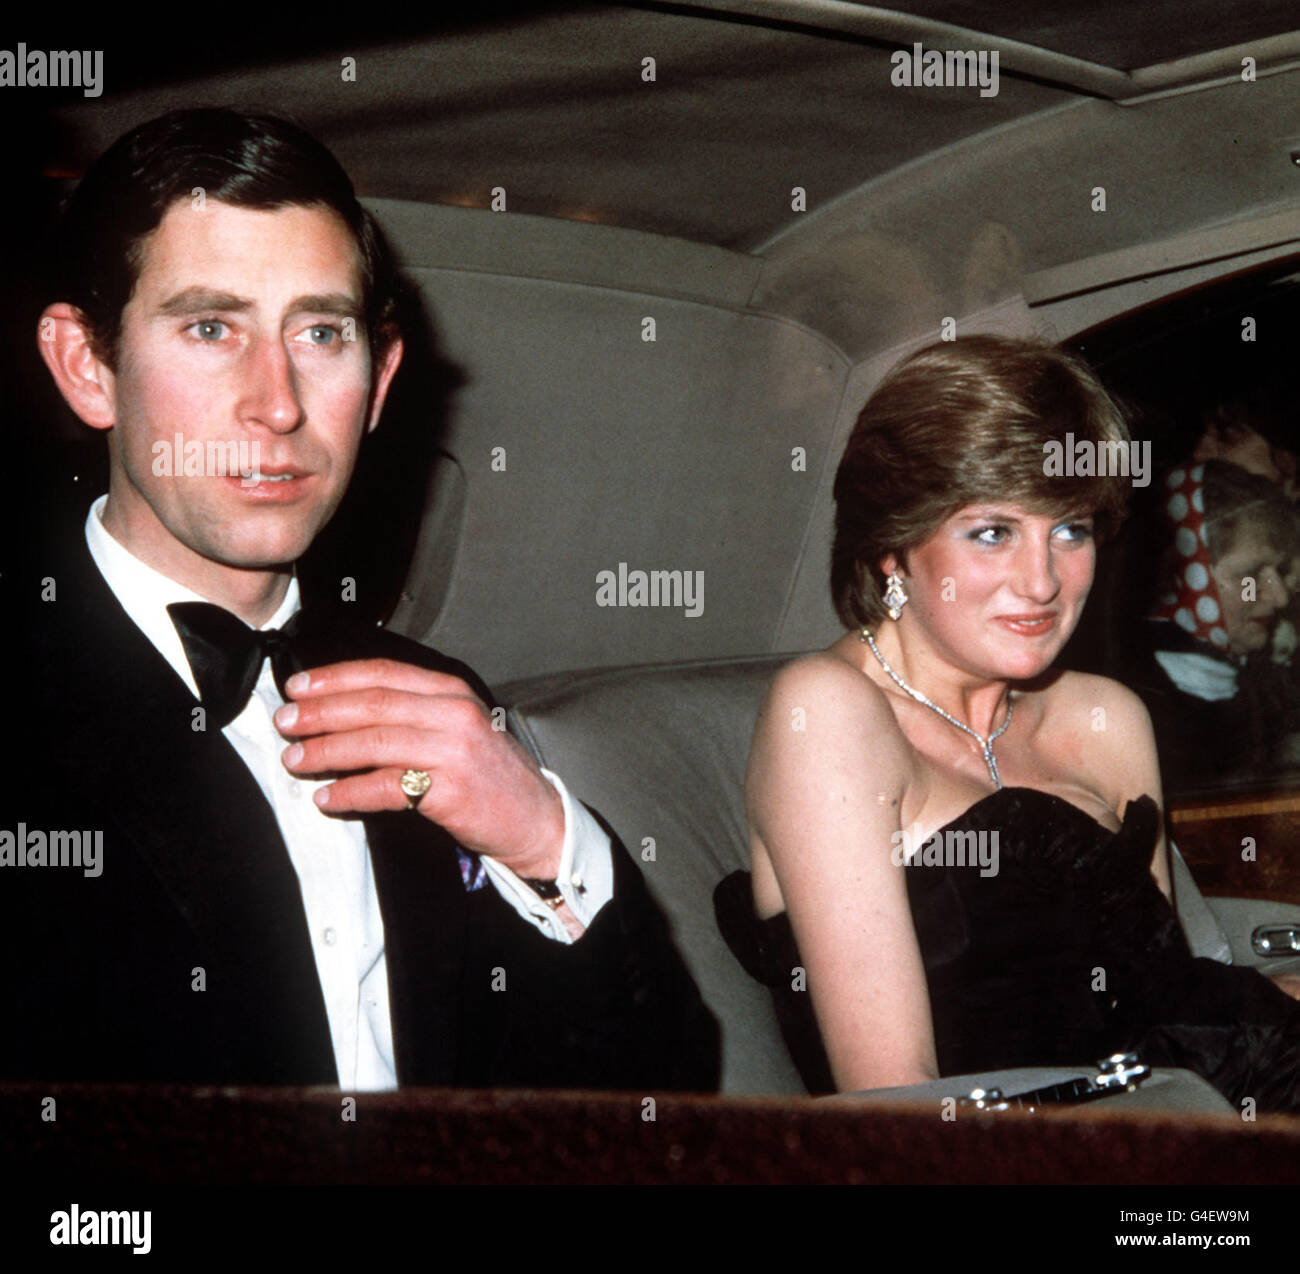 PRINCE CHARLES LADY DIANA 1ST ENGAGEMENT